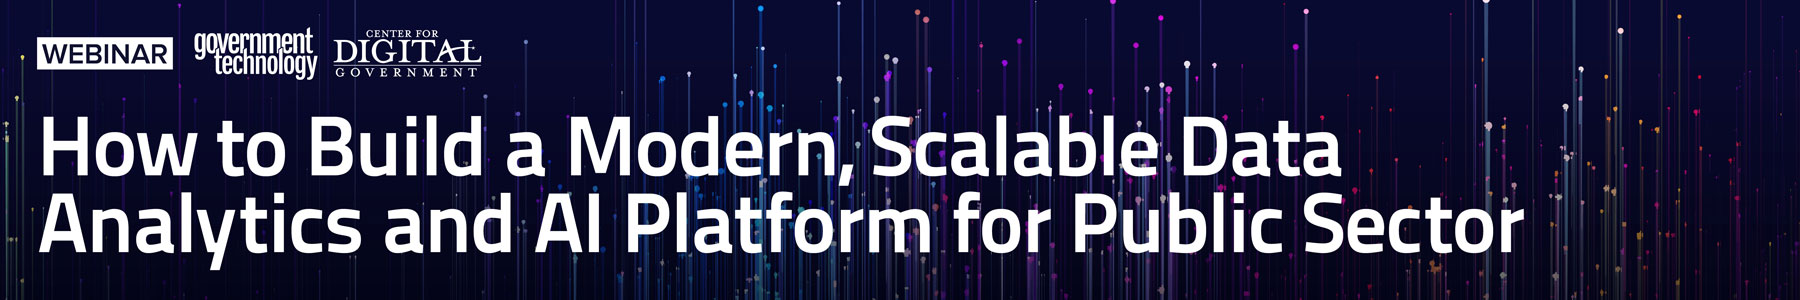 How to Build a Modern, Scalable Data Analytics and AI Platform for Public Sector